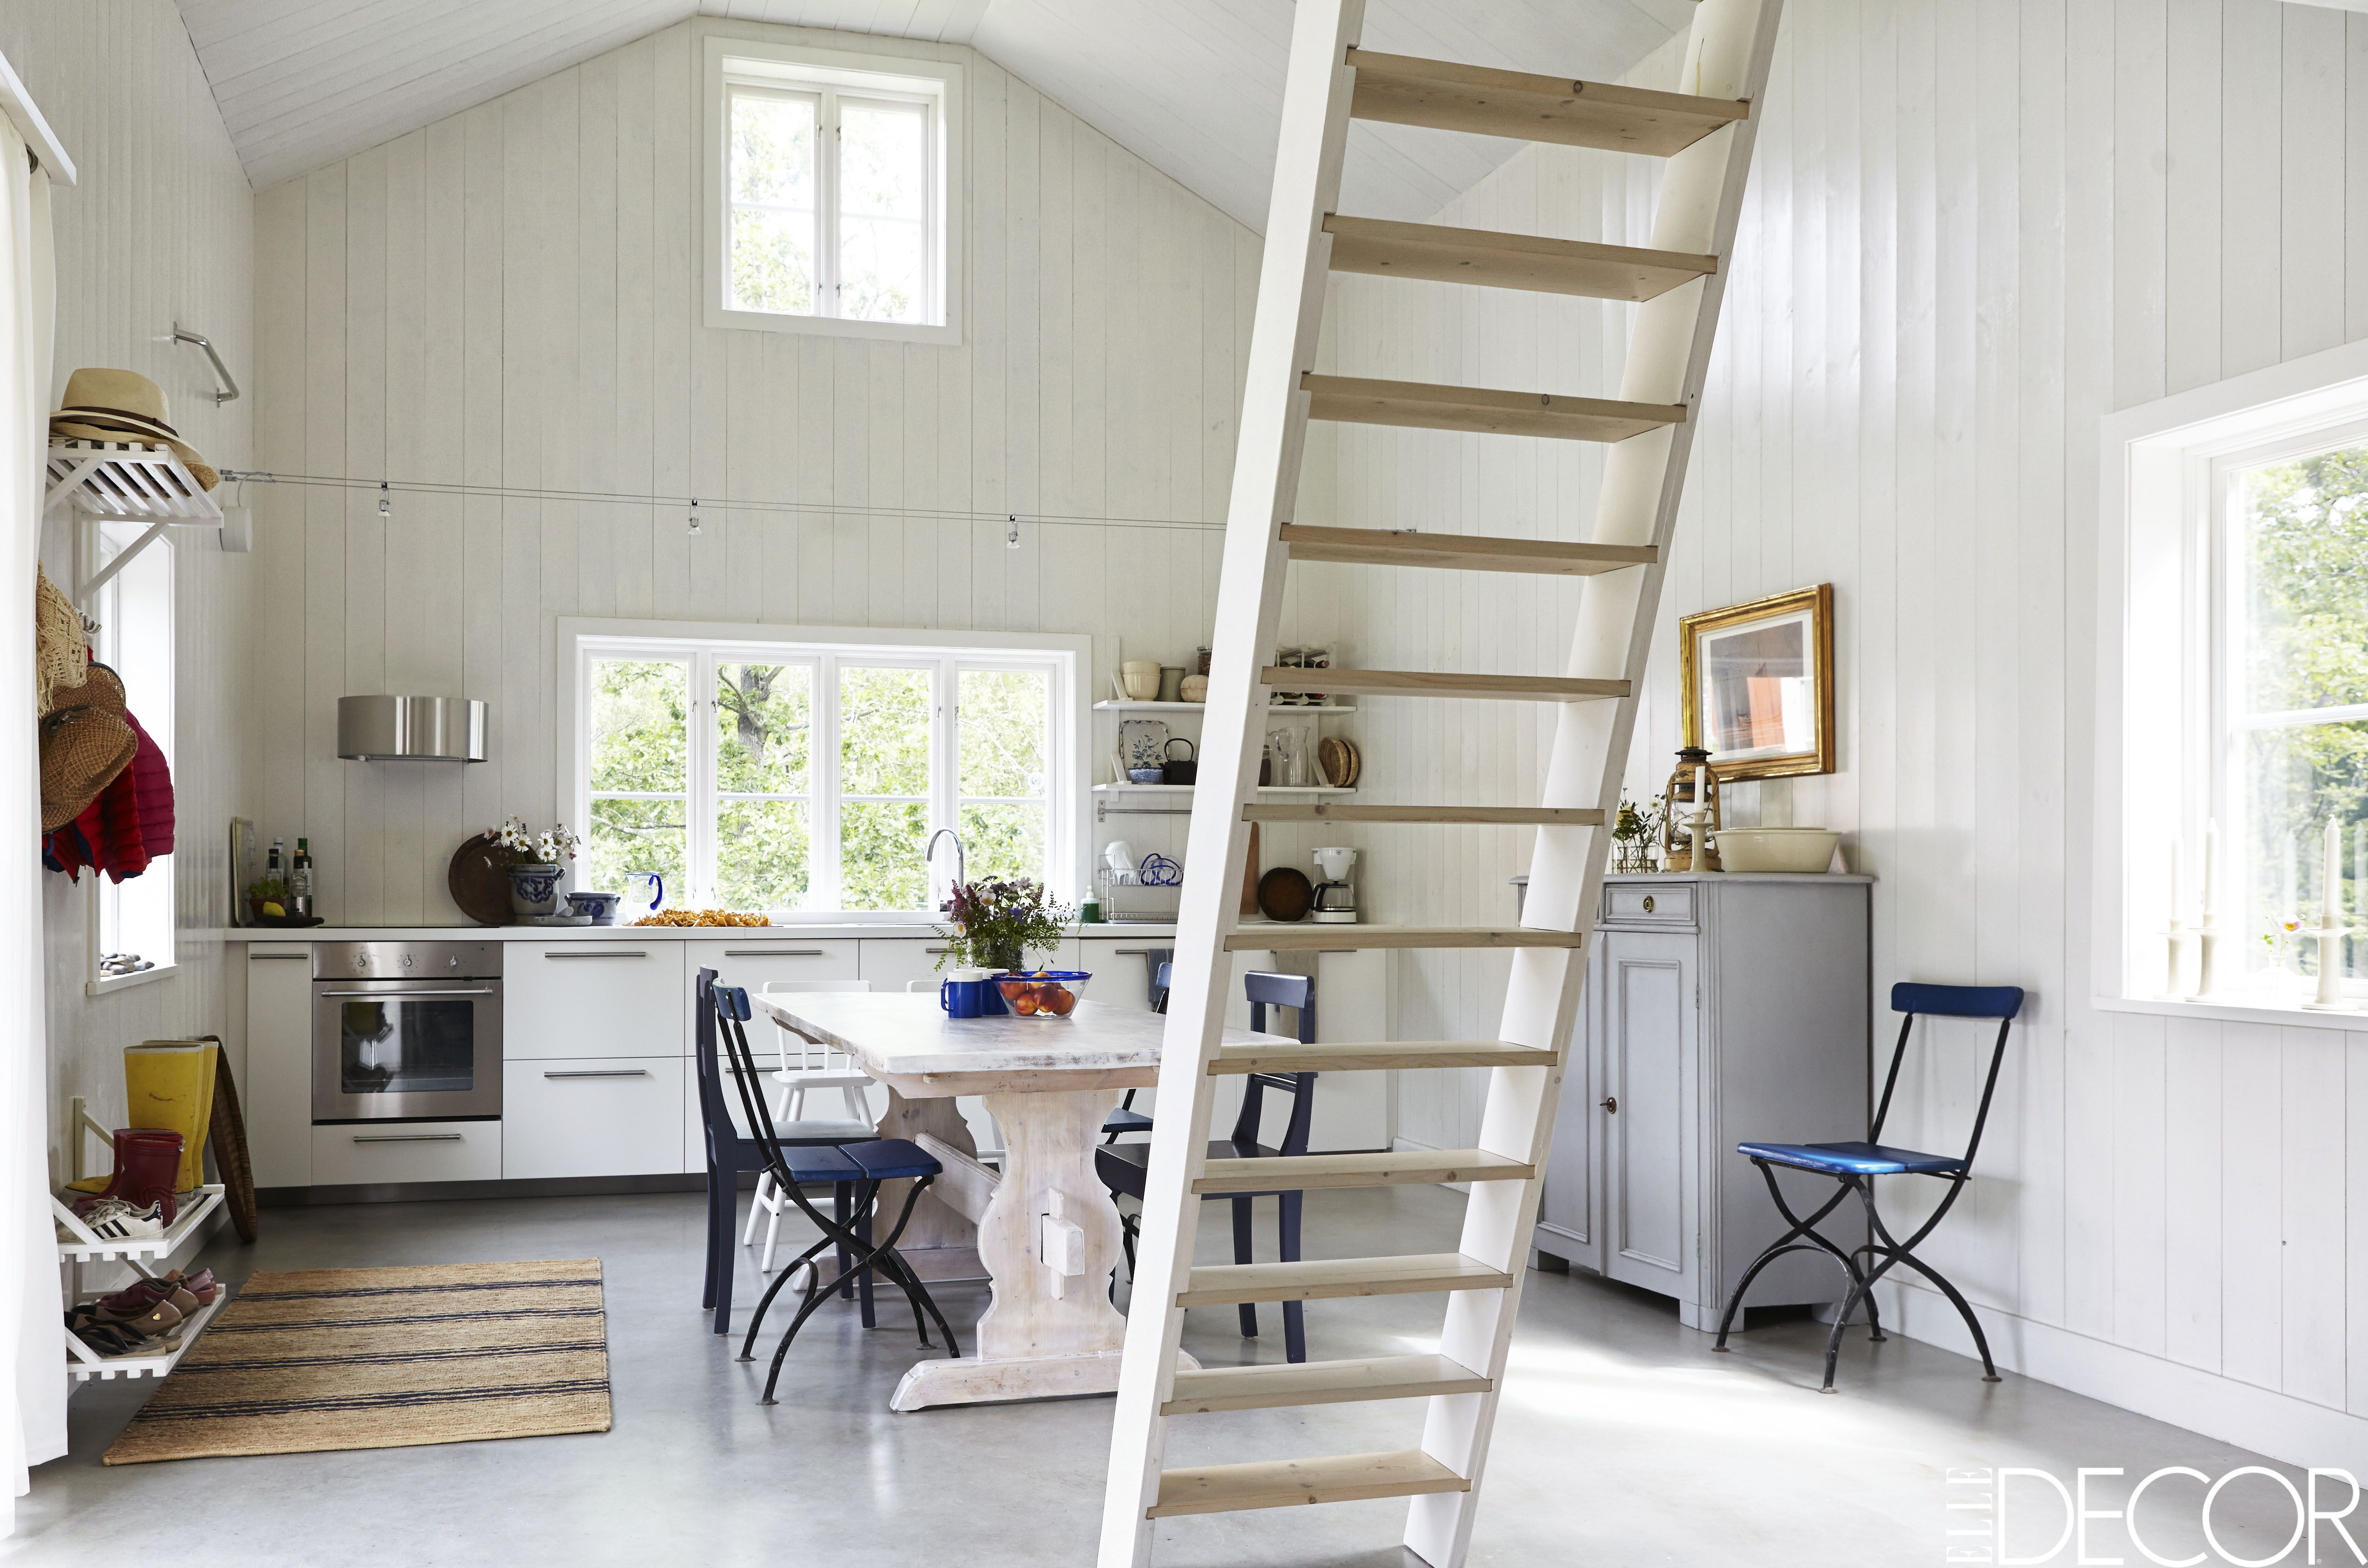 Swedish Decorating Tour A Minimalist Cottage With Scandinavian Design Summer House